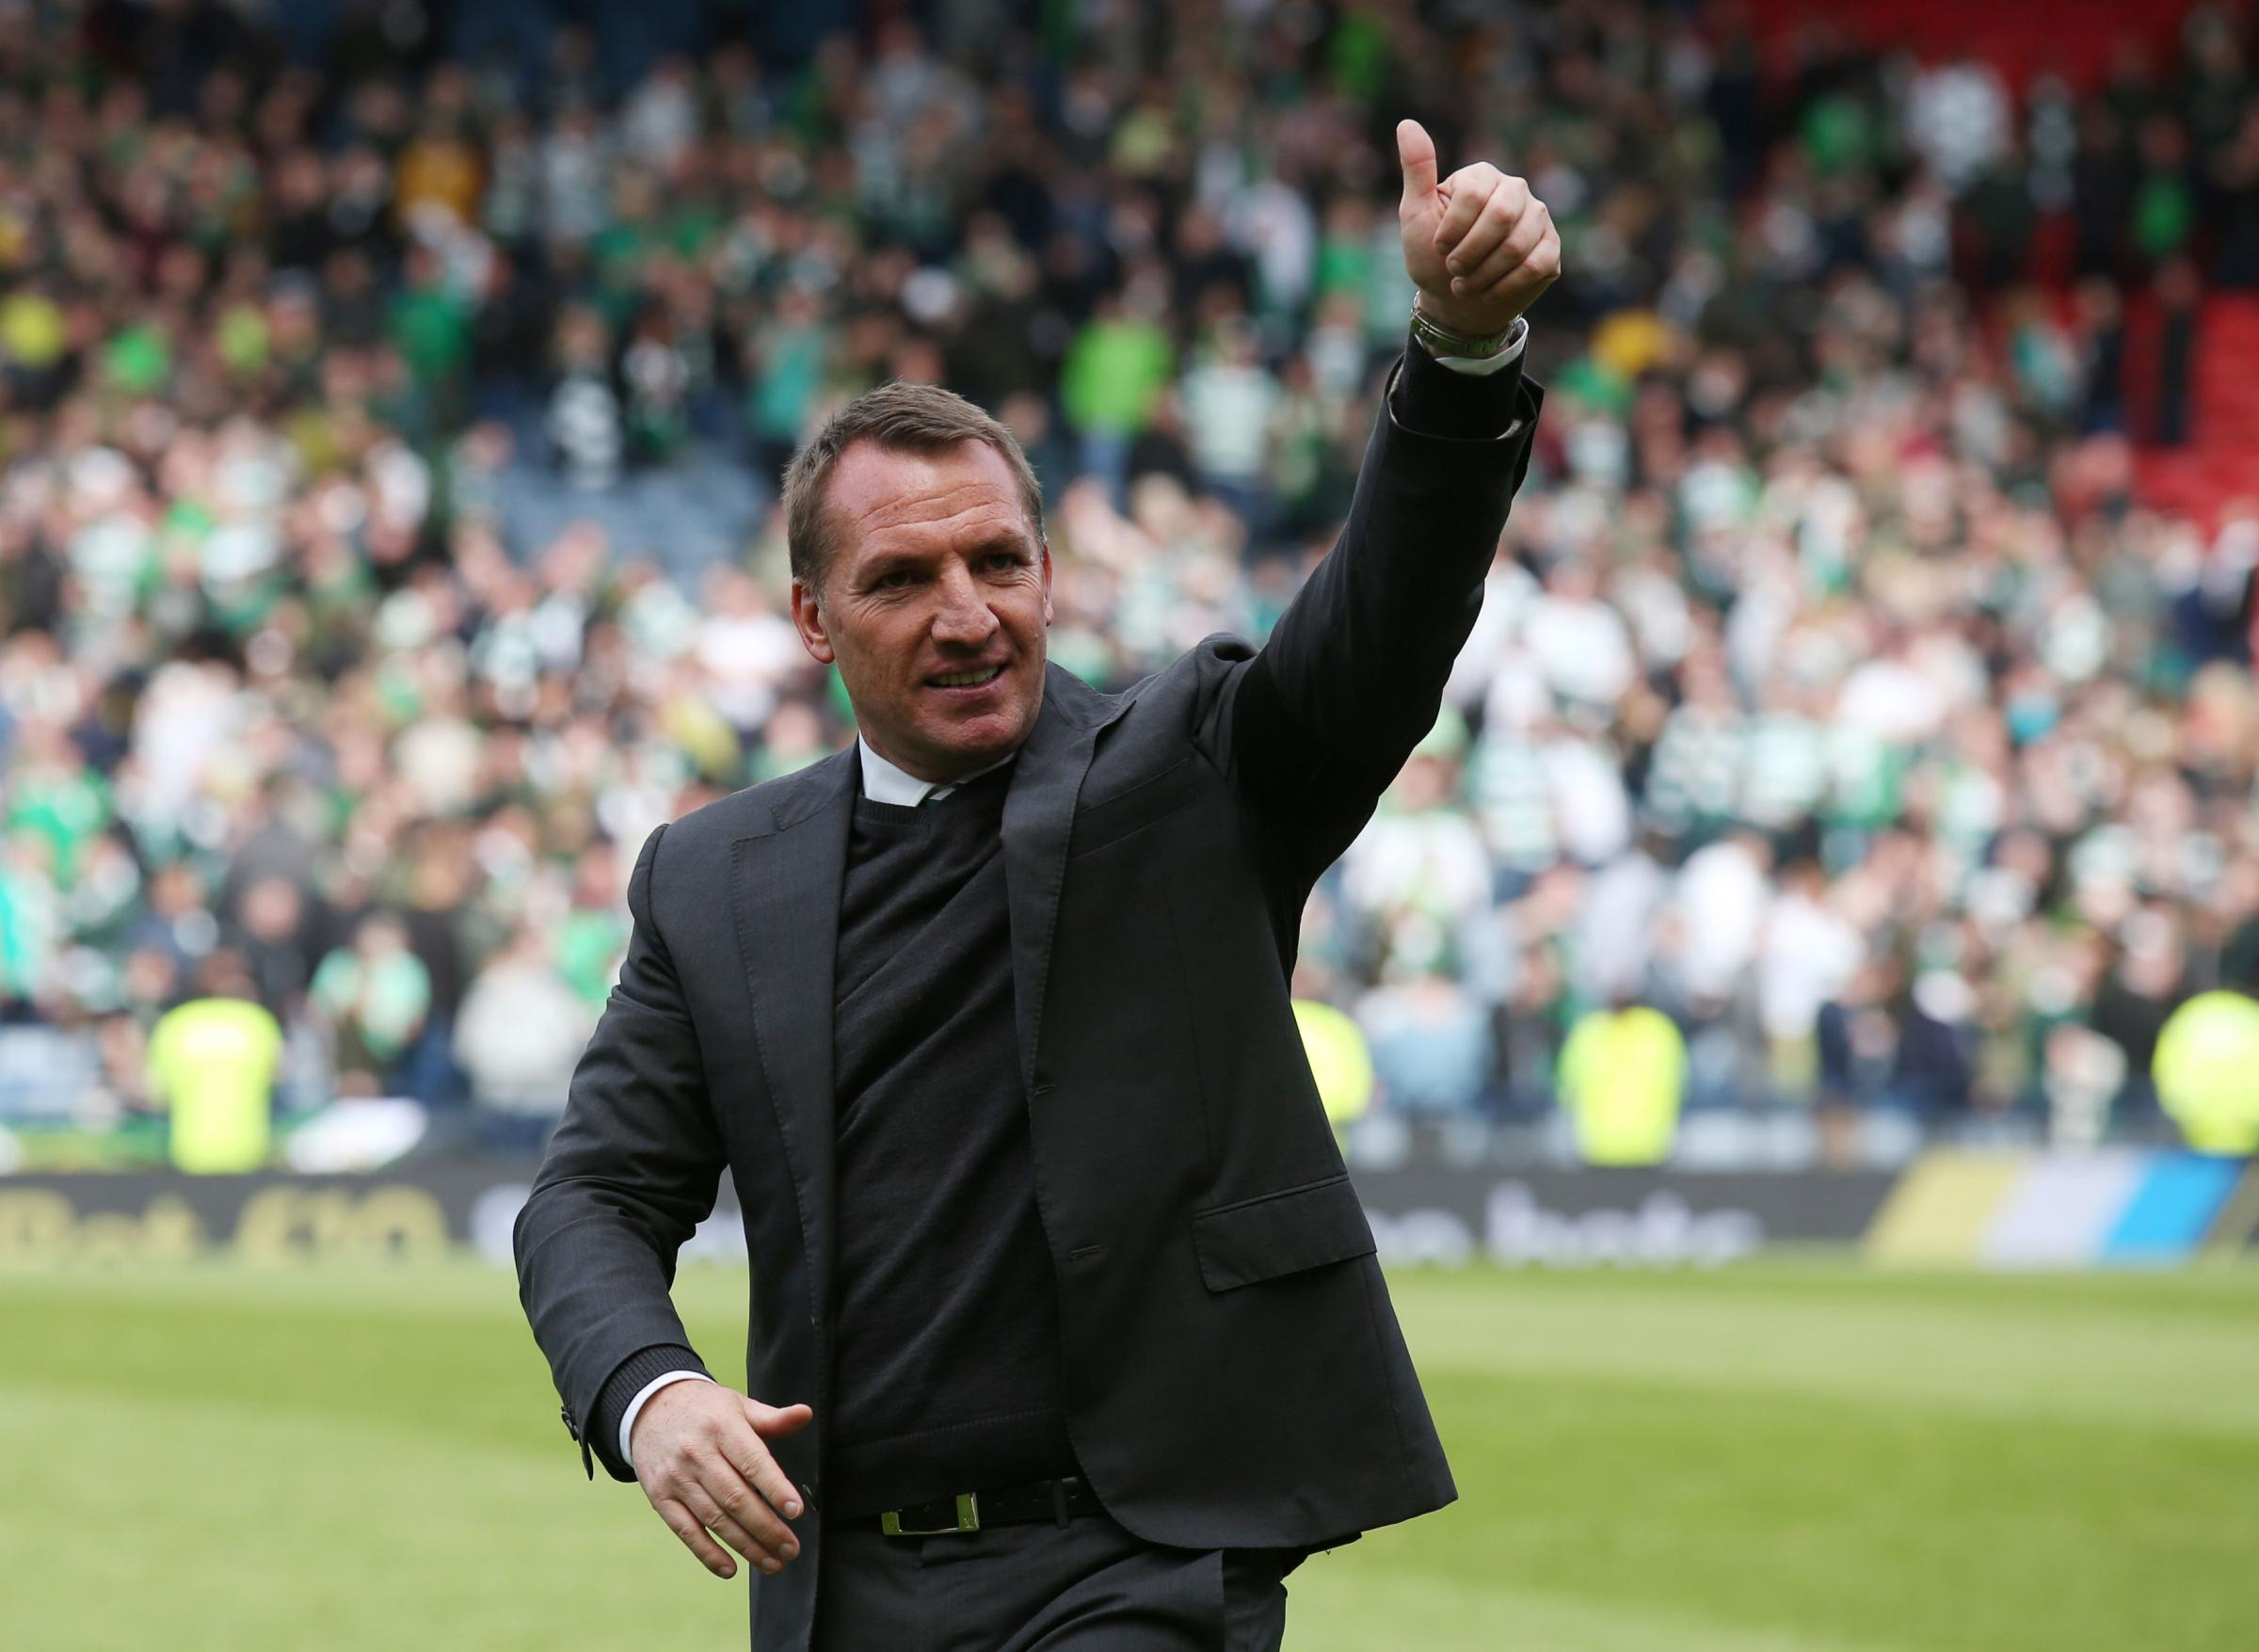 Dermot Desmond thought I would be too full of myself, reveals Brendan Rodgers